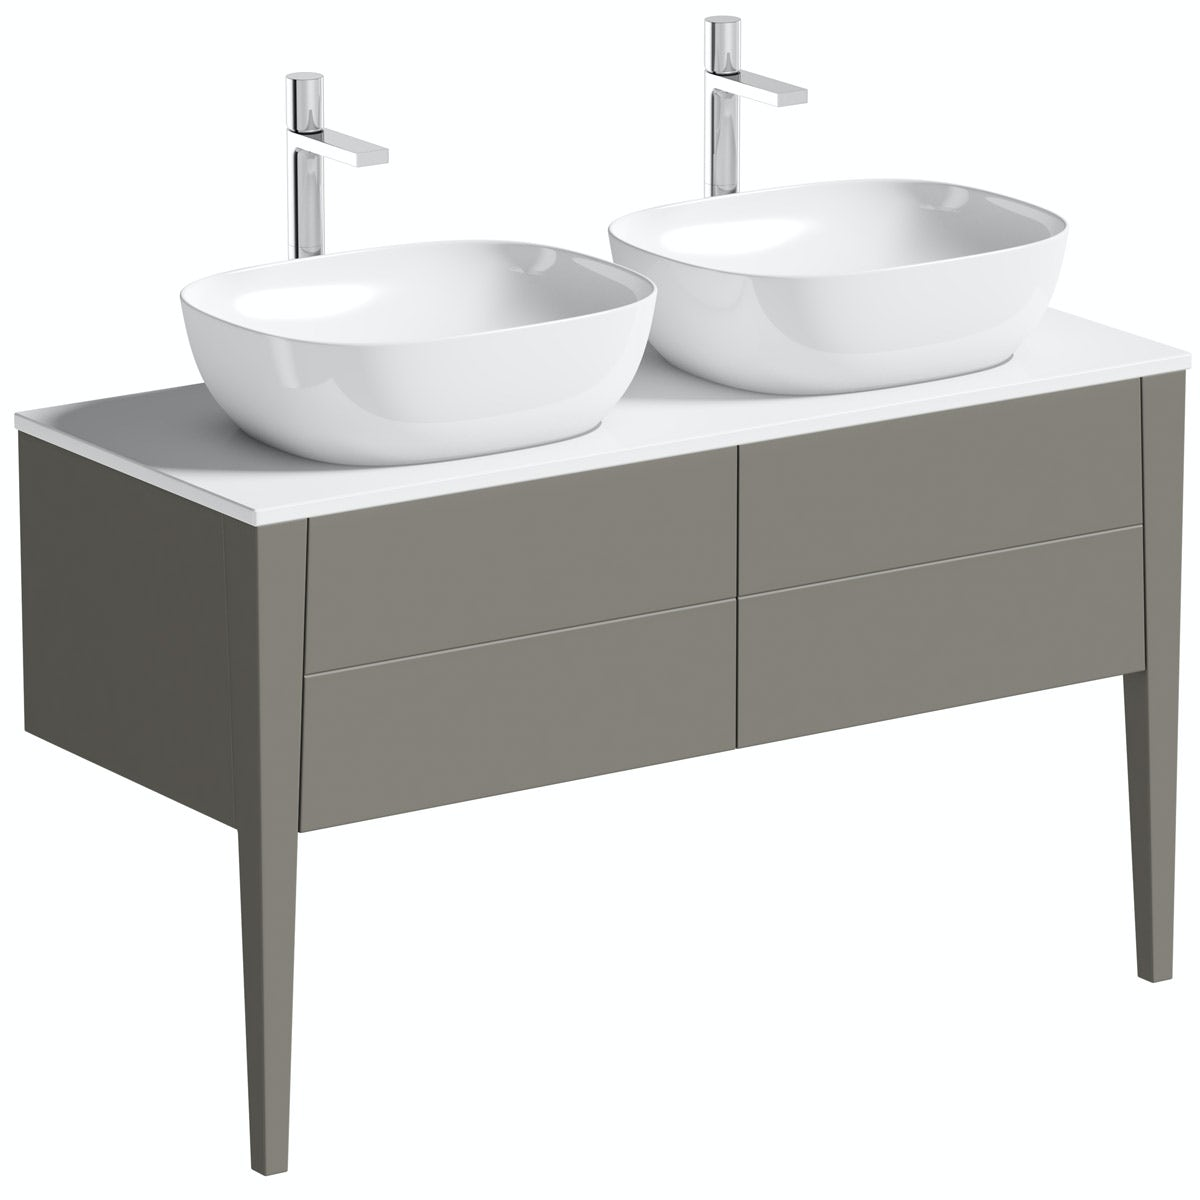 Mode Hale greystone matt countertop double basin vanity unit 1200mm